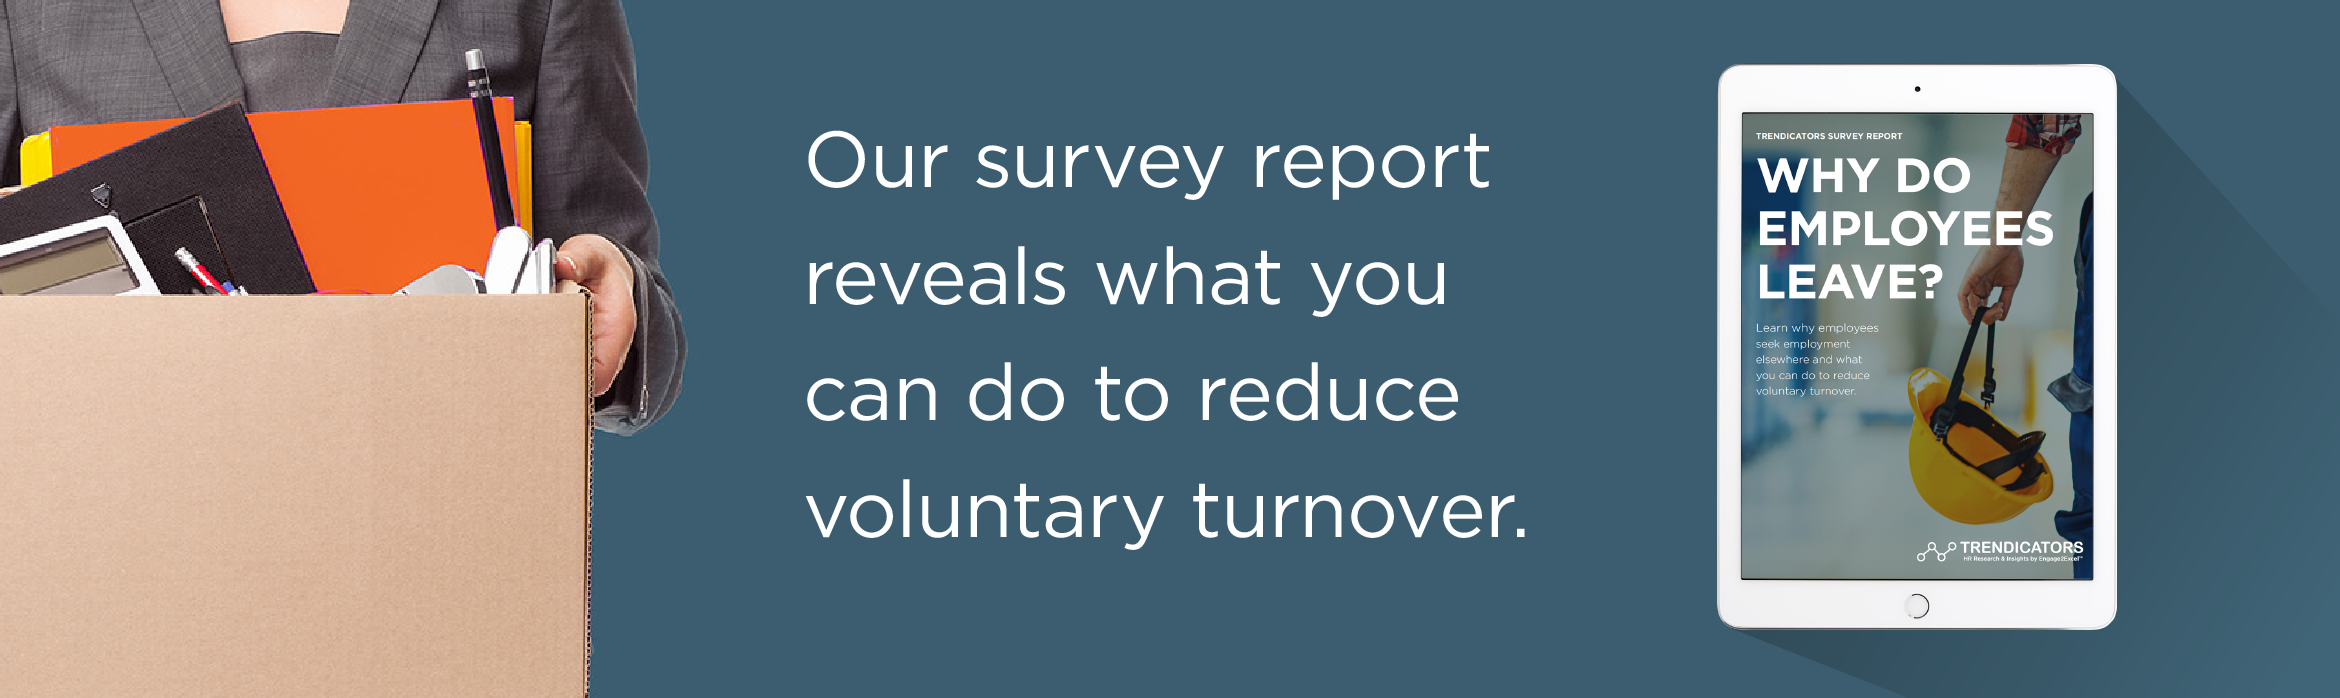 Our national survey reveals what you can do to reduce voluntary turnover.